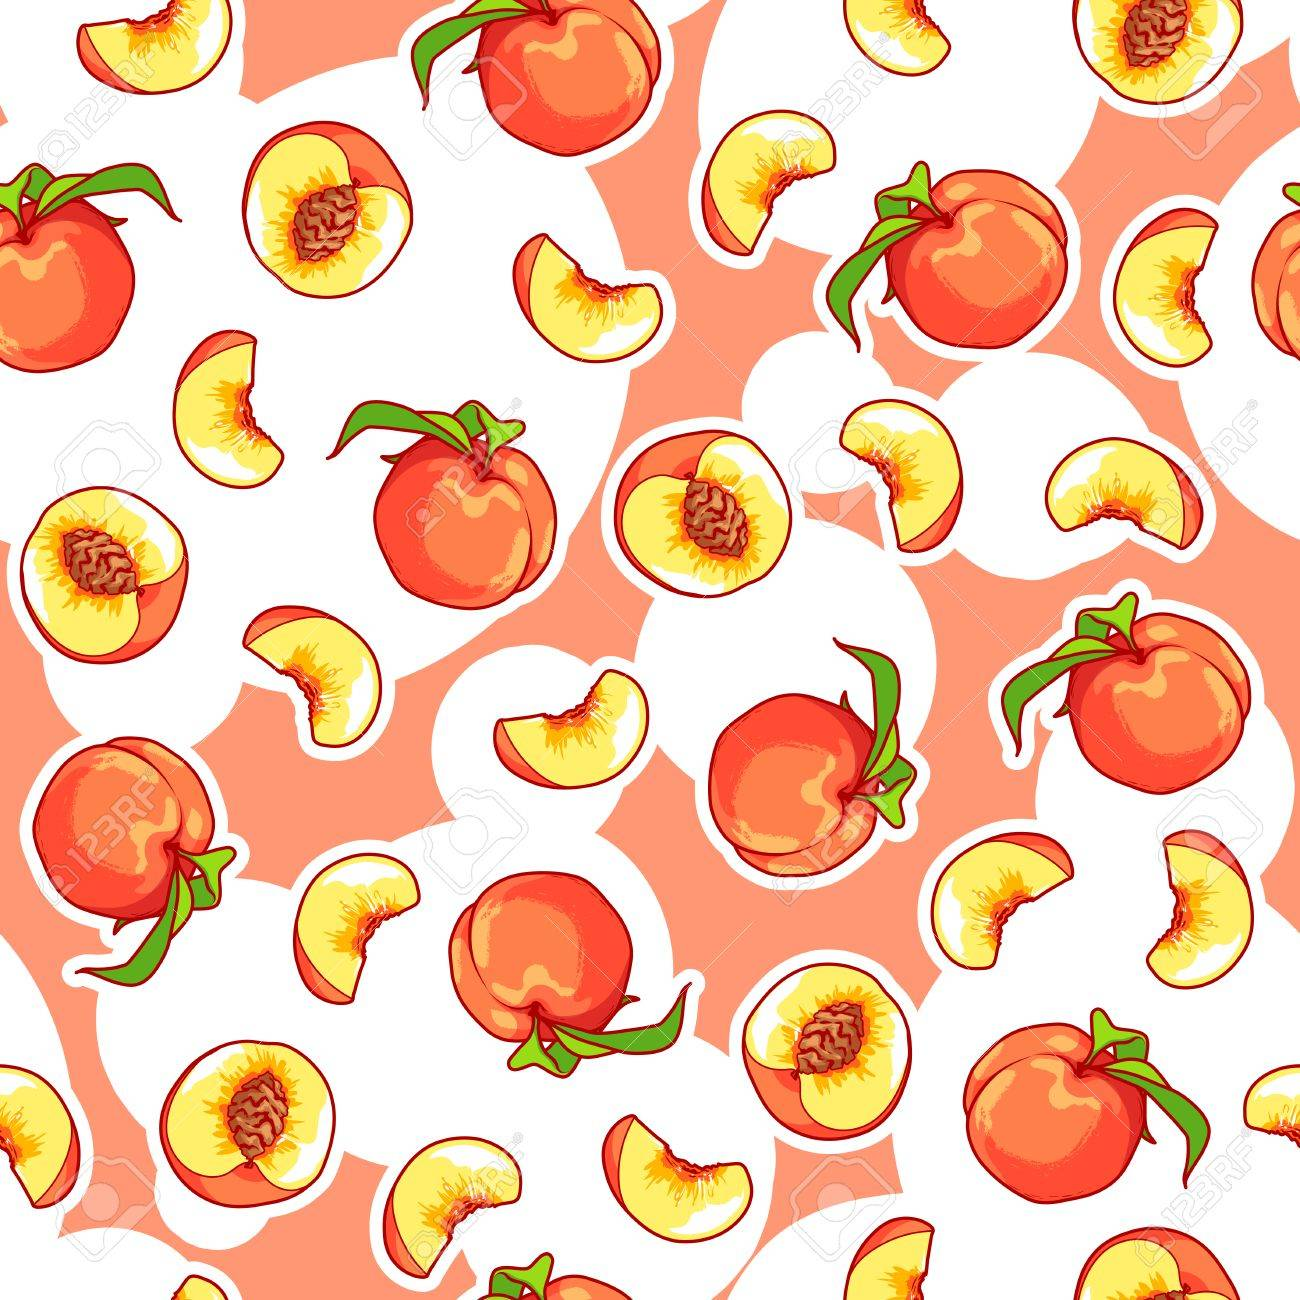 vector seamless pattern with peaches fruit background royalty free cliparts vectors and stock illustration image 59892861 vector seamless pattern with peaches fruit background